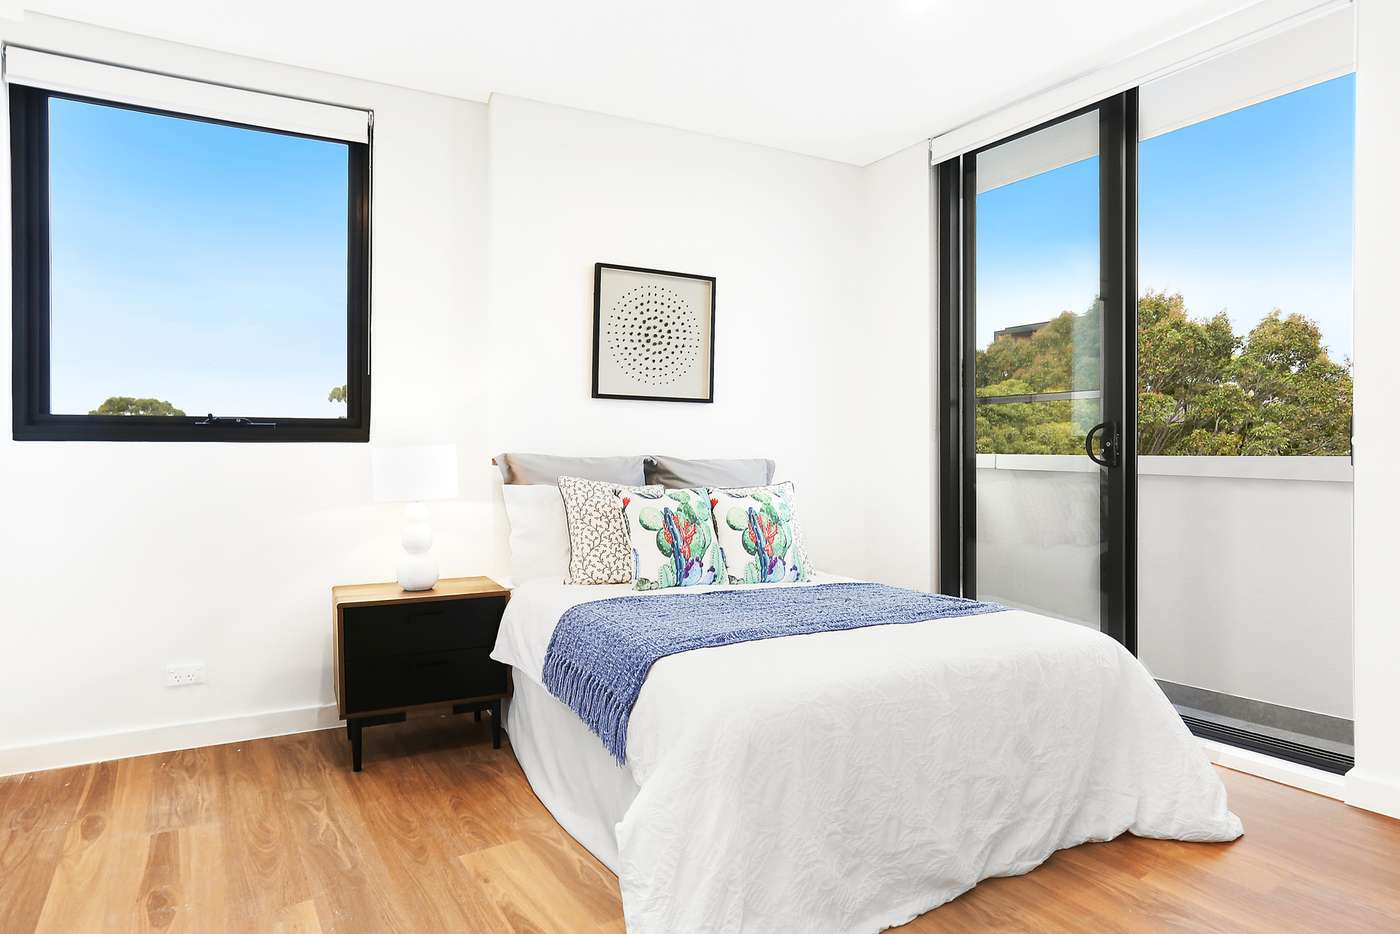 Fifth view of Homely apartment listing, 707/2 Murrell Street, Ashfield NSW 2131